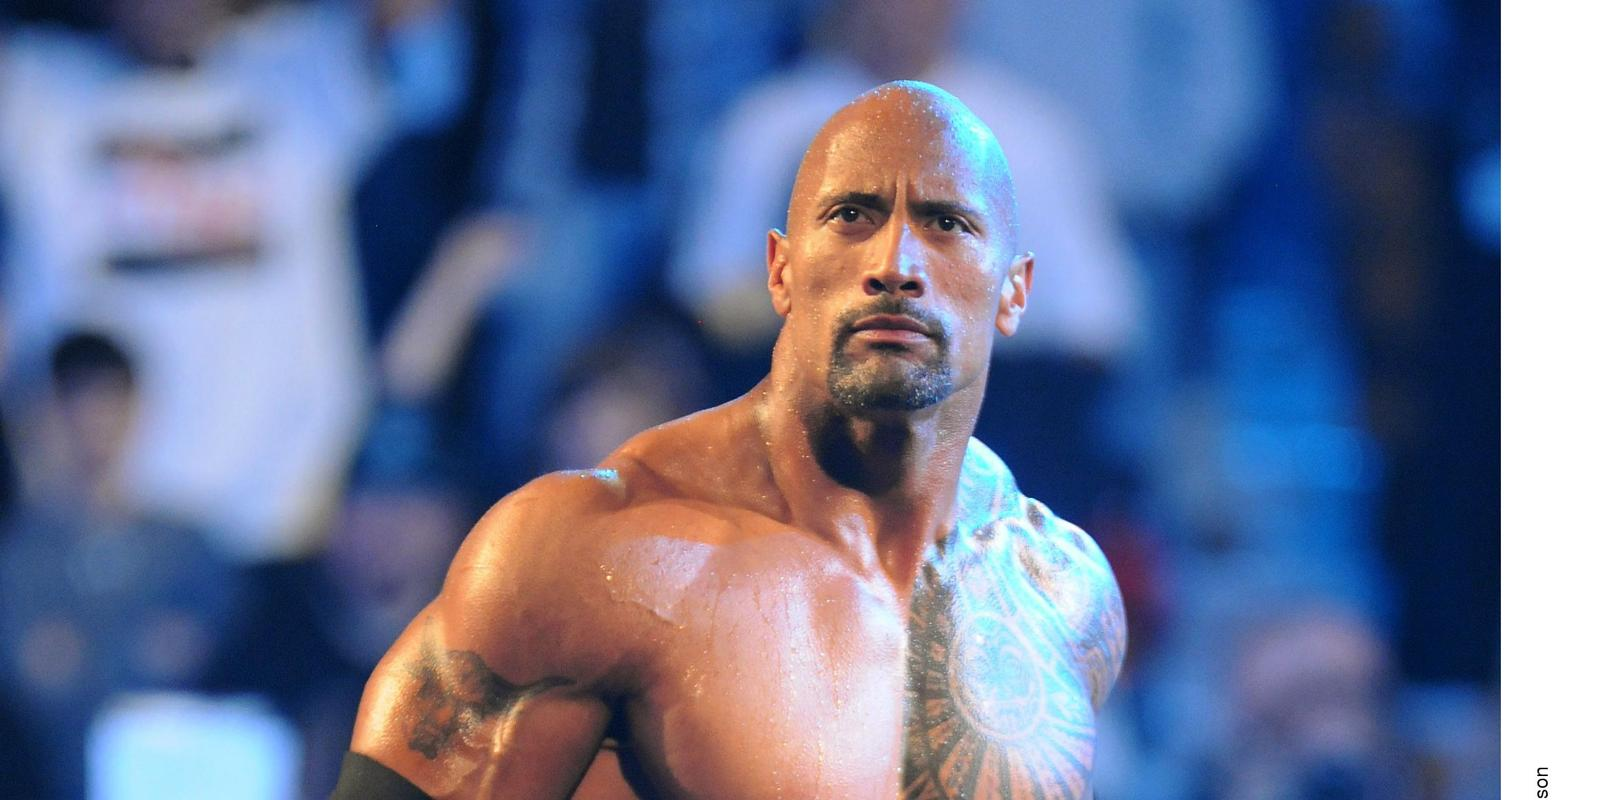 an introduction to the life of dwayne johnson also known as the rock 'my mom tried to check out': dwayne 'the rock' johnson opens up about his mother's suicide attempt filming a scene for his series, dwayne johnson reflects on how loved ones should really pay attention when people are in pain.